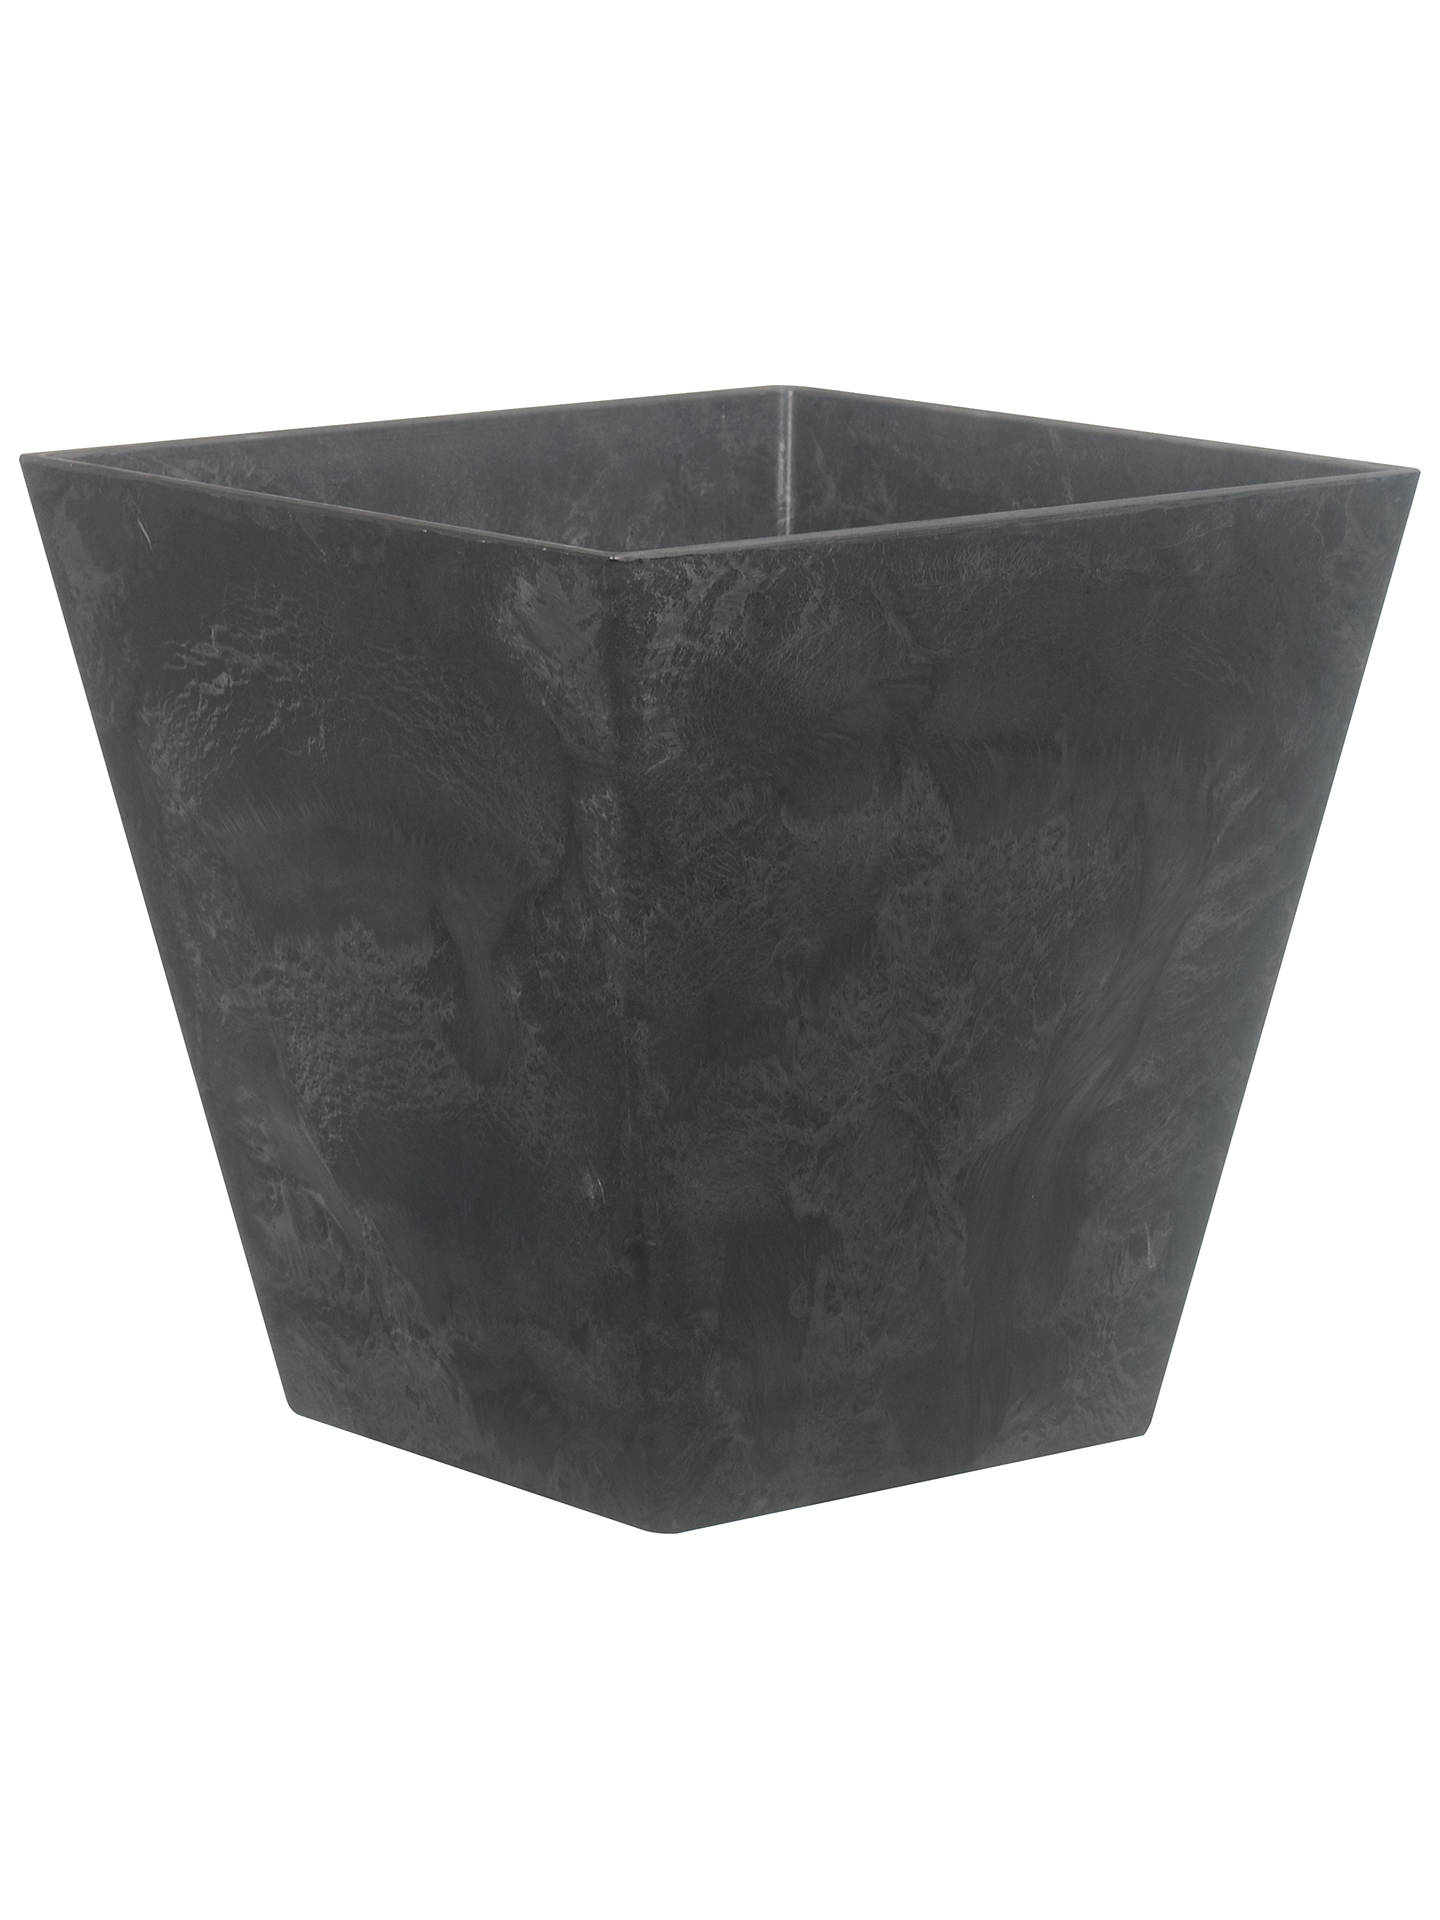 BuyArtstone Ella Planter, Black, H29 x W30 x D30cm Online at johnlewis.com